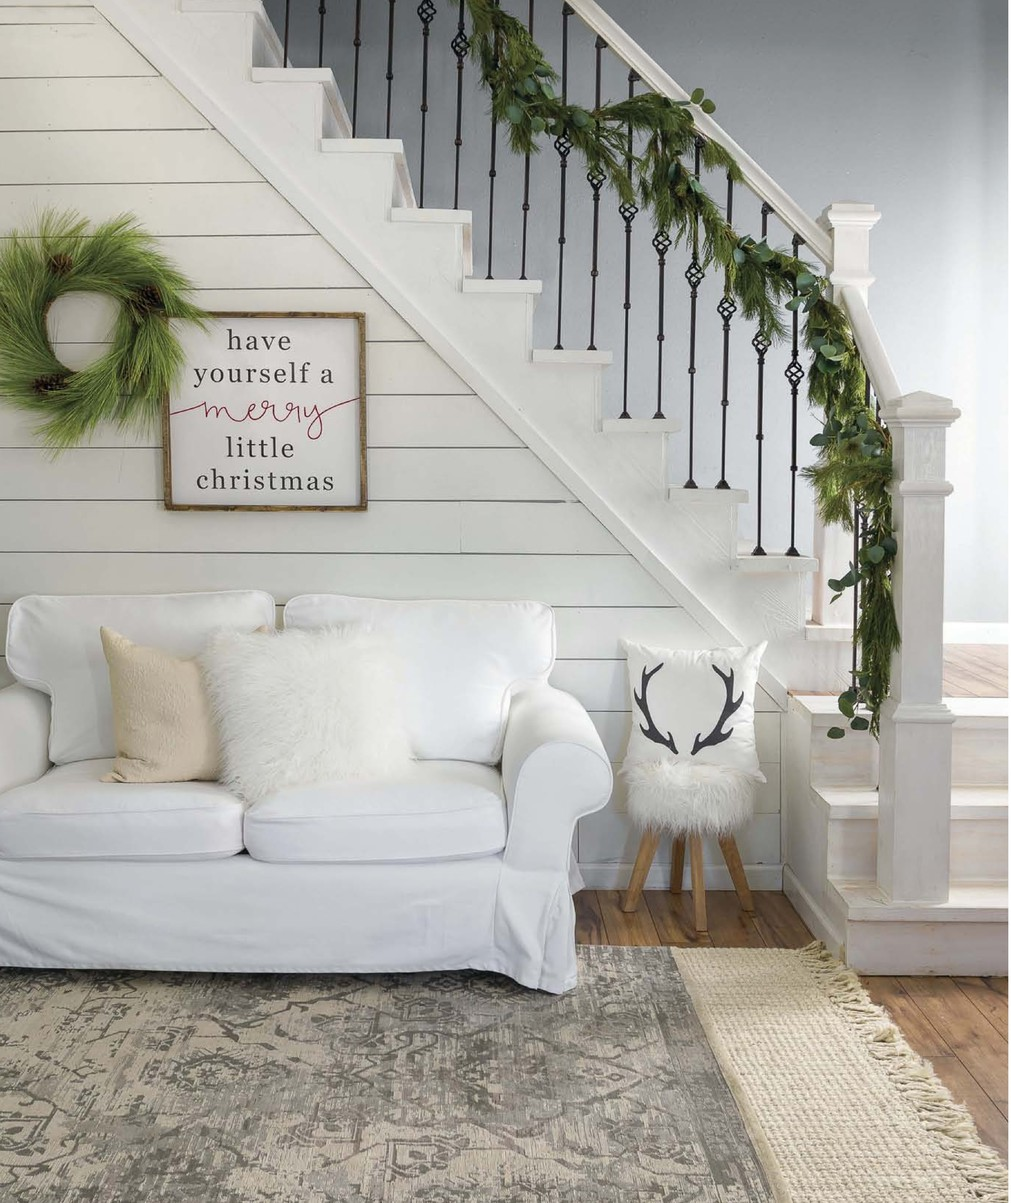 homeowner jo shetley uses signs throughout her homethe sweet sentiments capture the beauty of life this timber and gray sign calls to mind old carols - When Did White Christmas Come Out